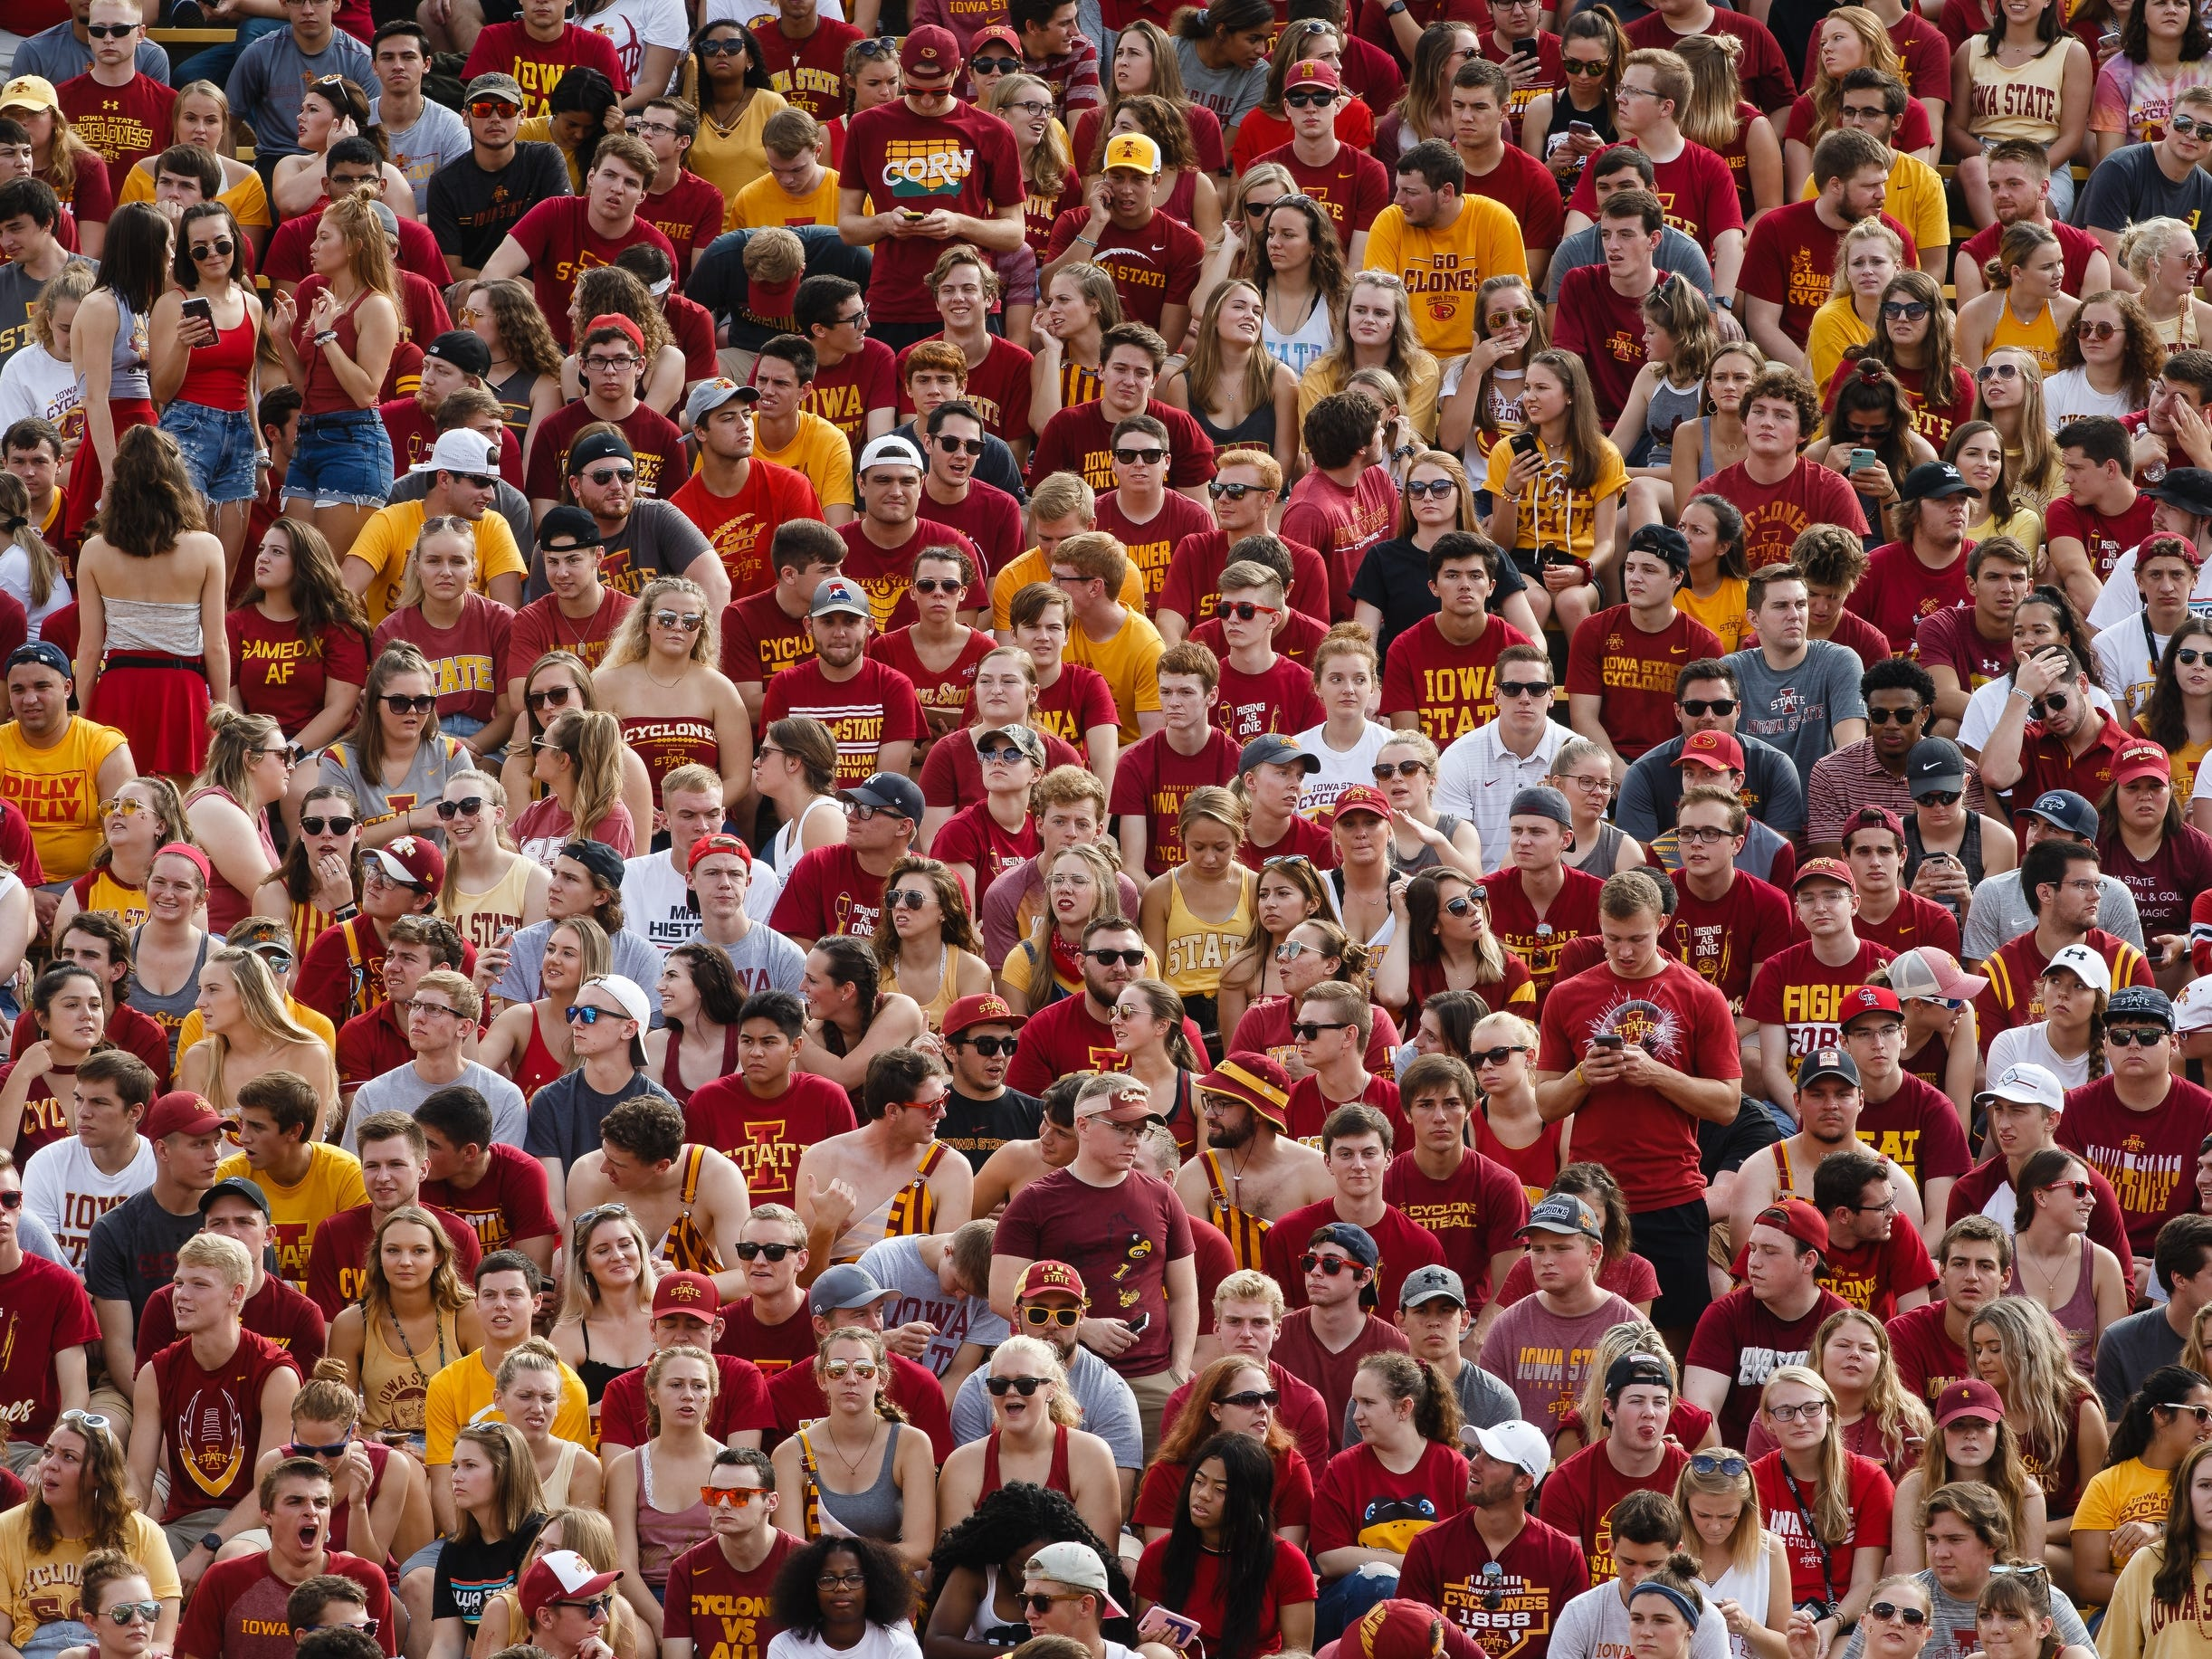 ISU fans wait for the start of the Oklahoma game at Jack Trice Stadium on Saturday, Sept. 15, 2018 in Ames.